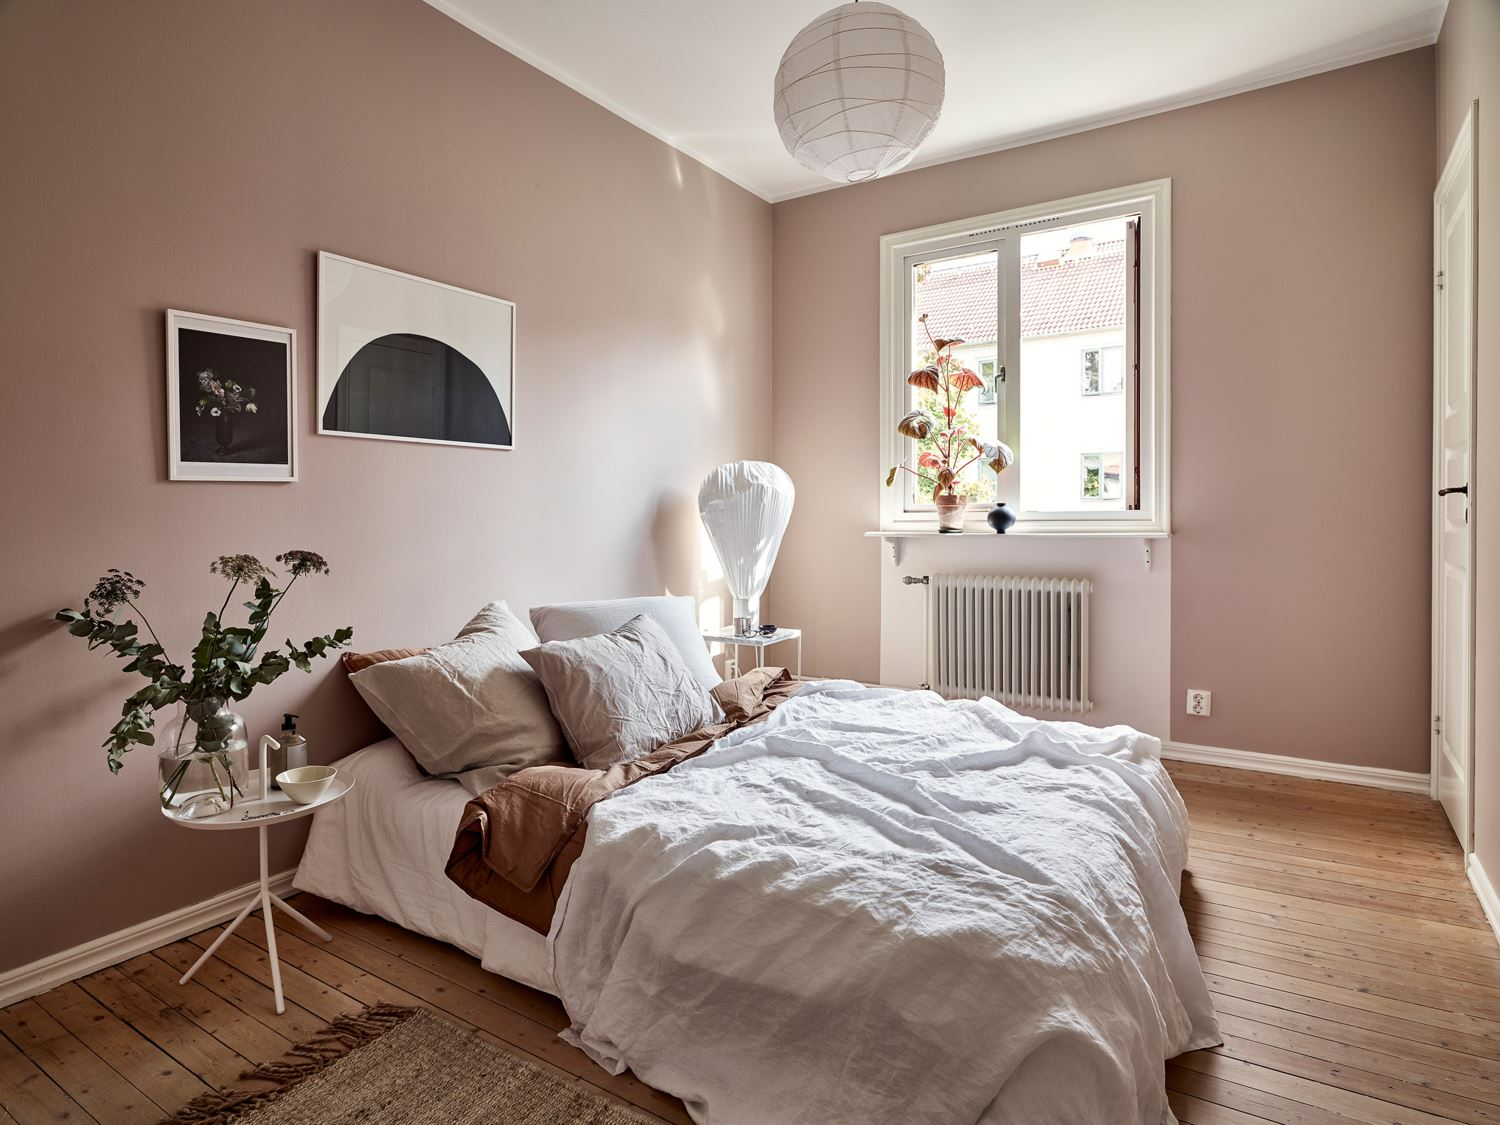 Dusty pink bedroom walls - COCO LAPINE DESIGNCOCO LAPINE DESIGN